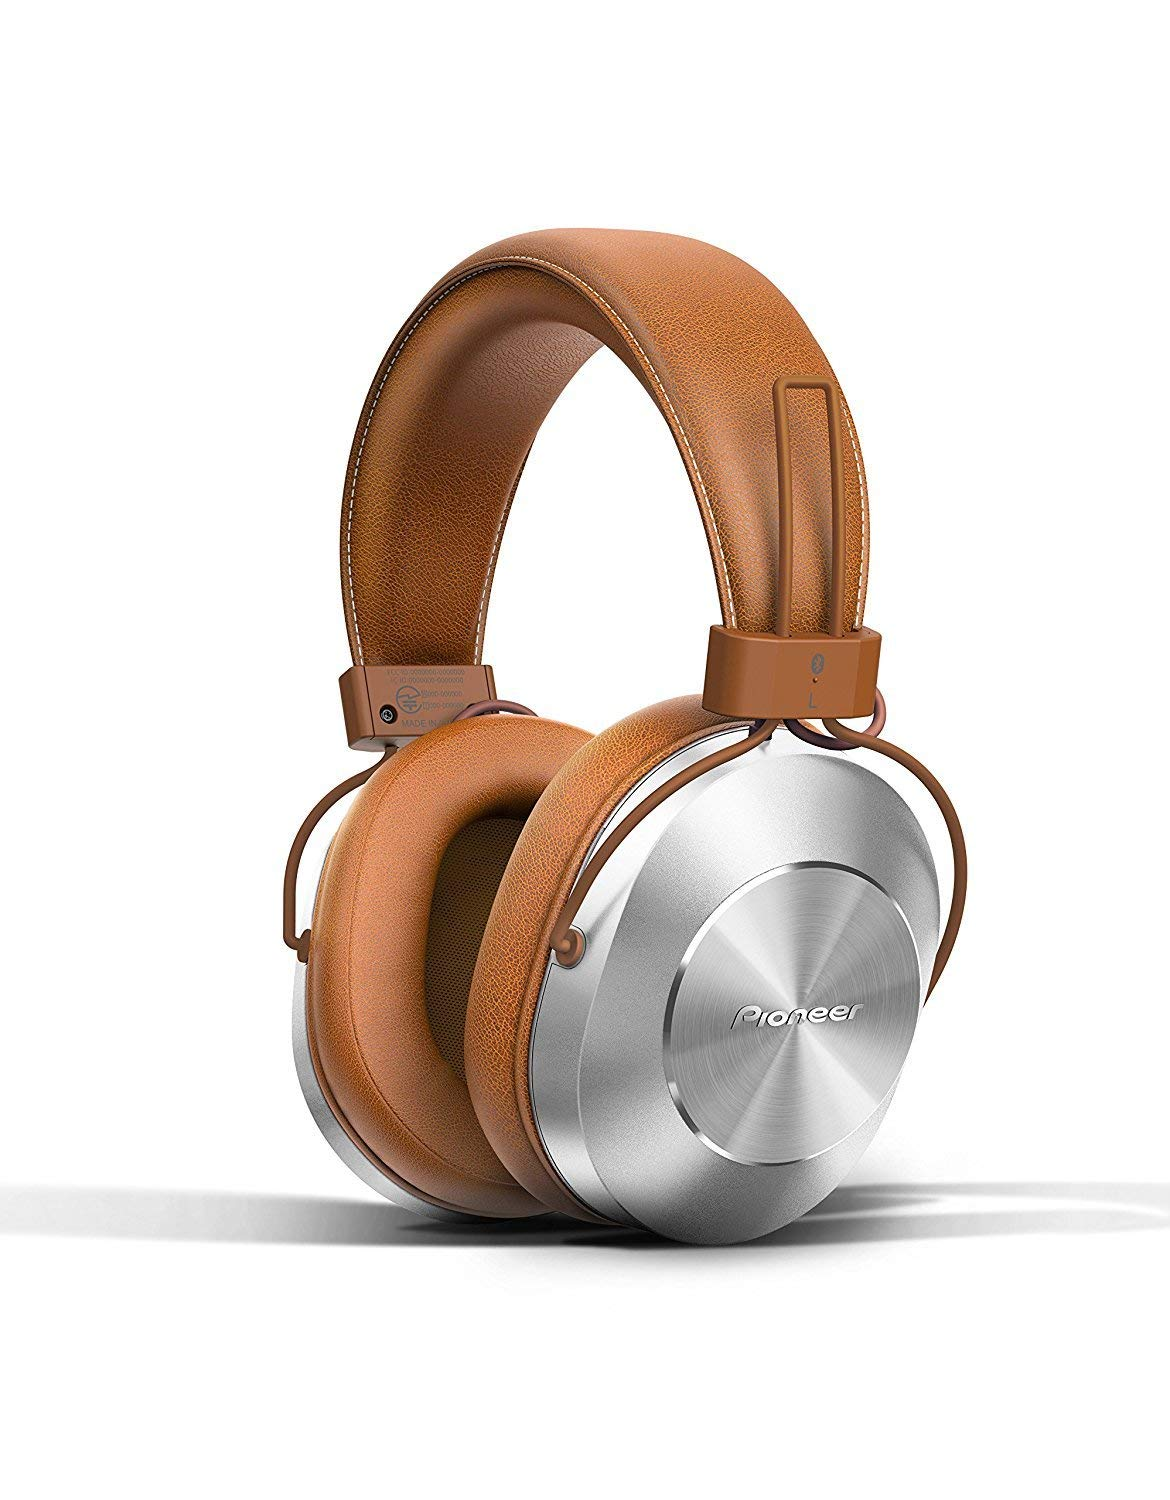 BRAND NEW Pioneer Bluetooth & High-Resolution Over Ear Wireless Headphone, Brown SE-MS7BT-T